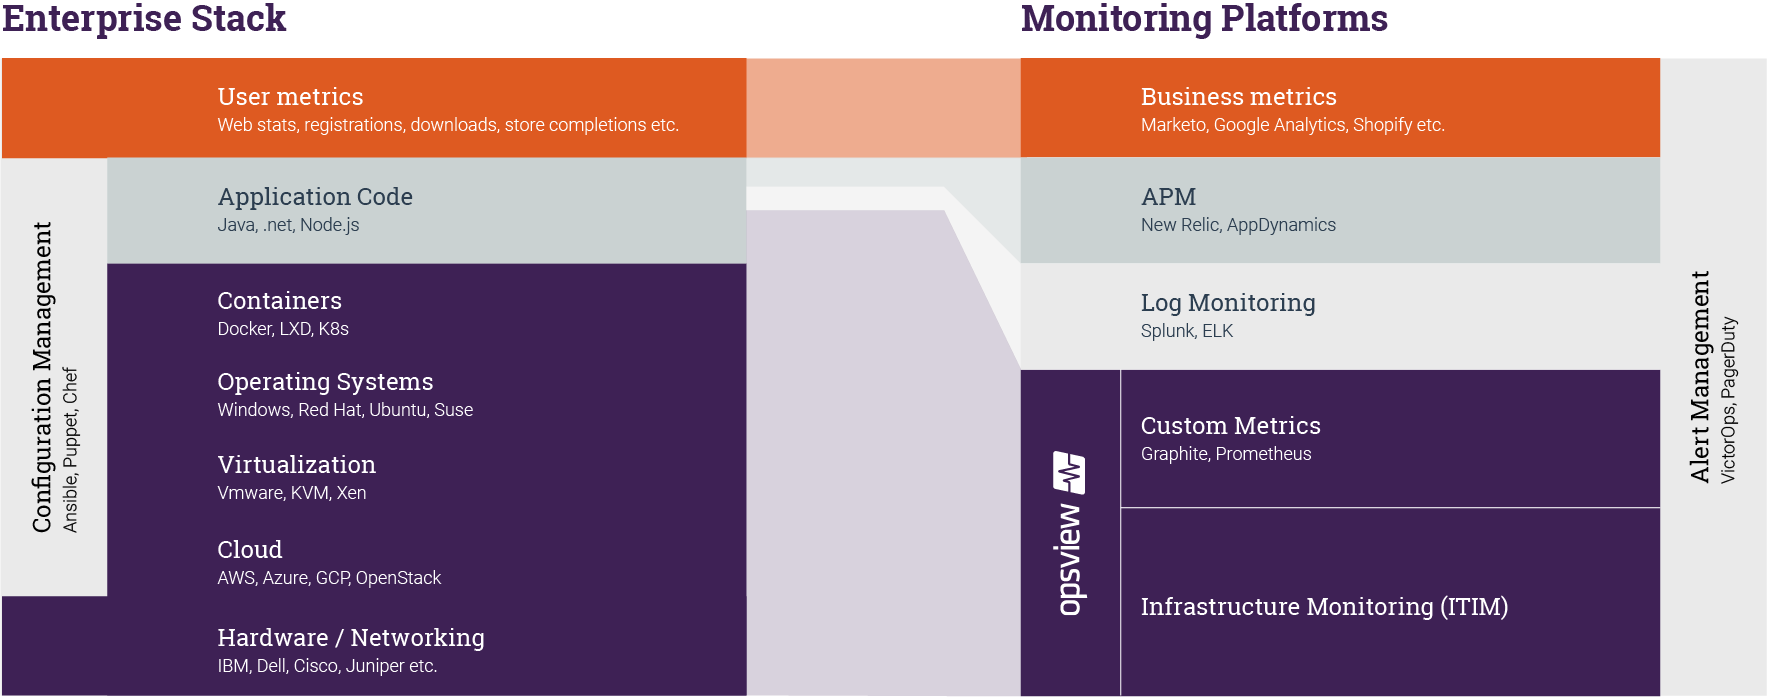 Monitoring the Enterprise Stack